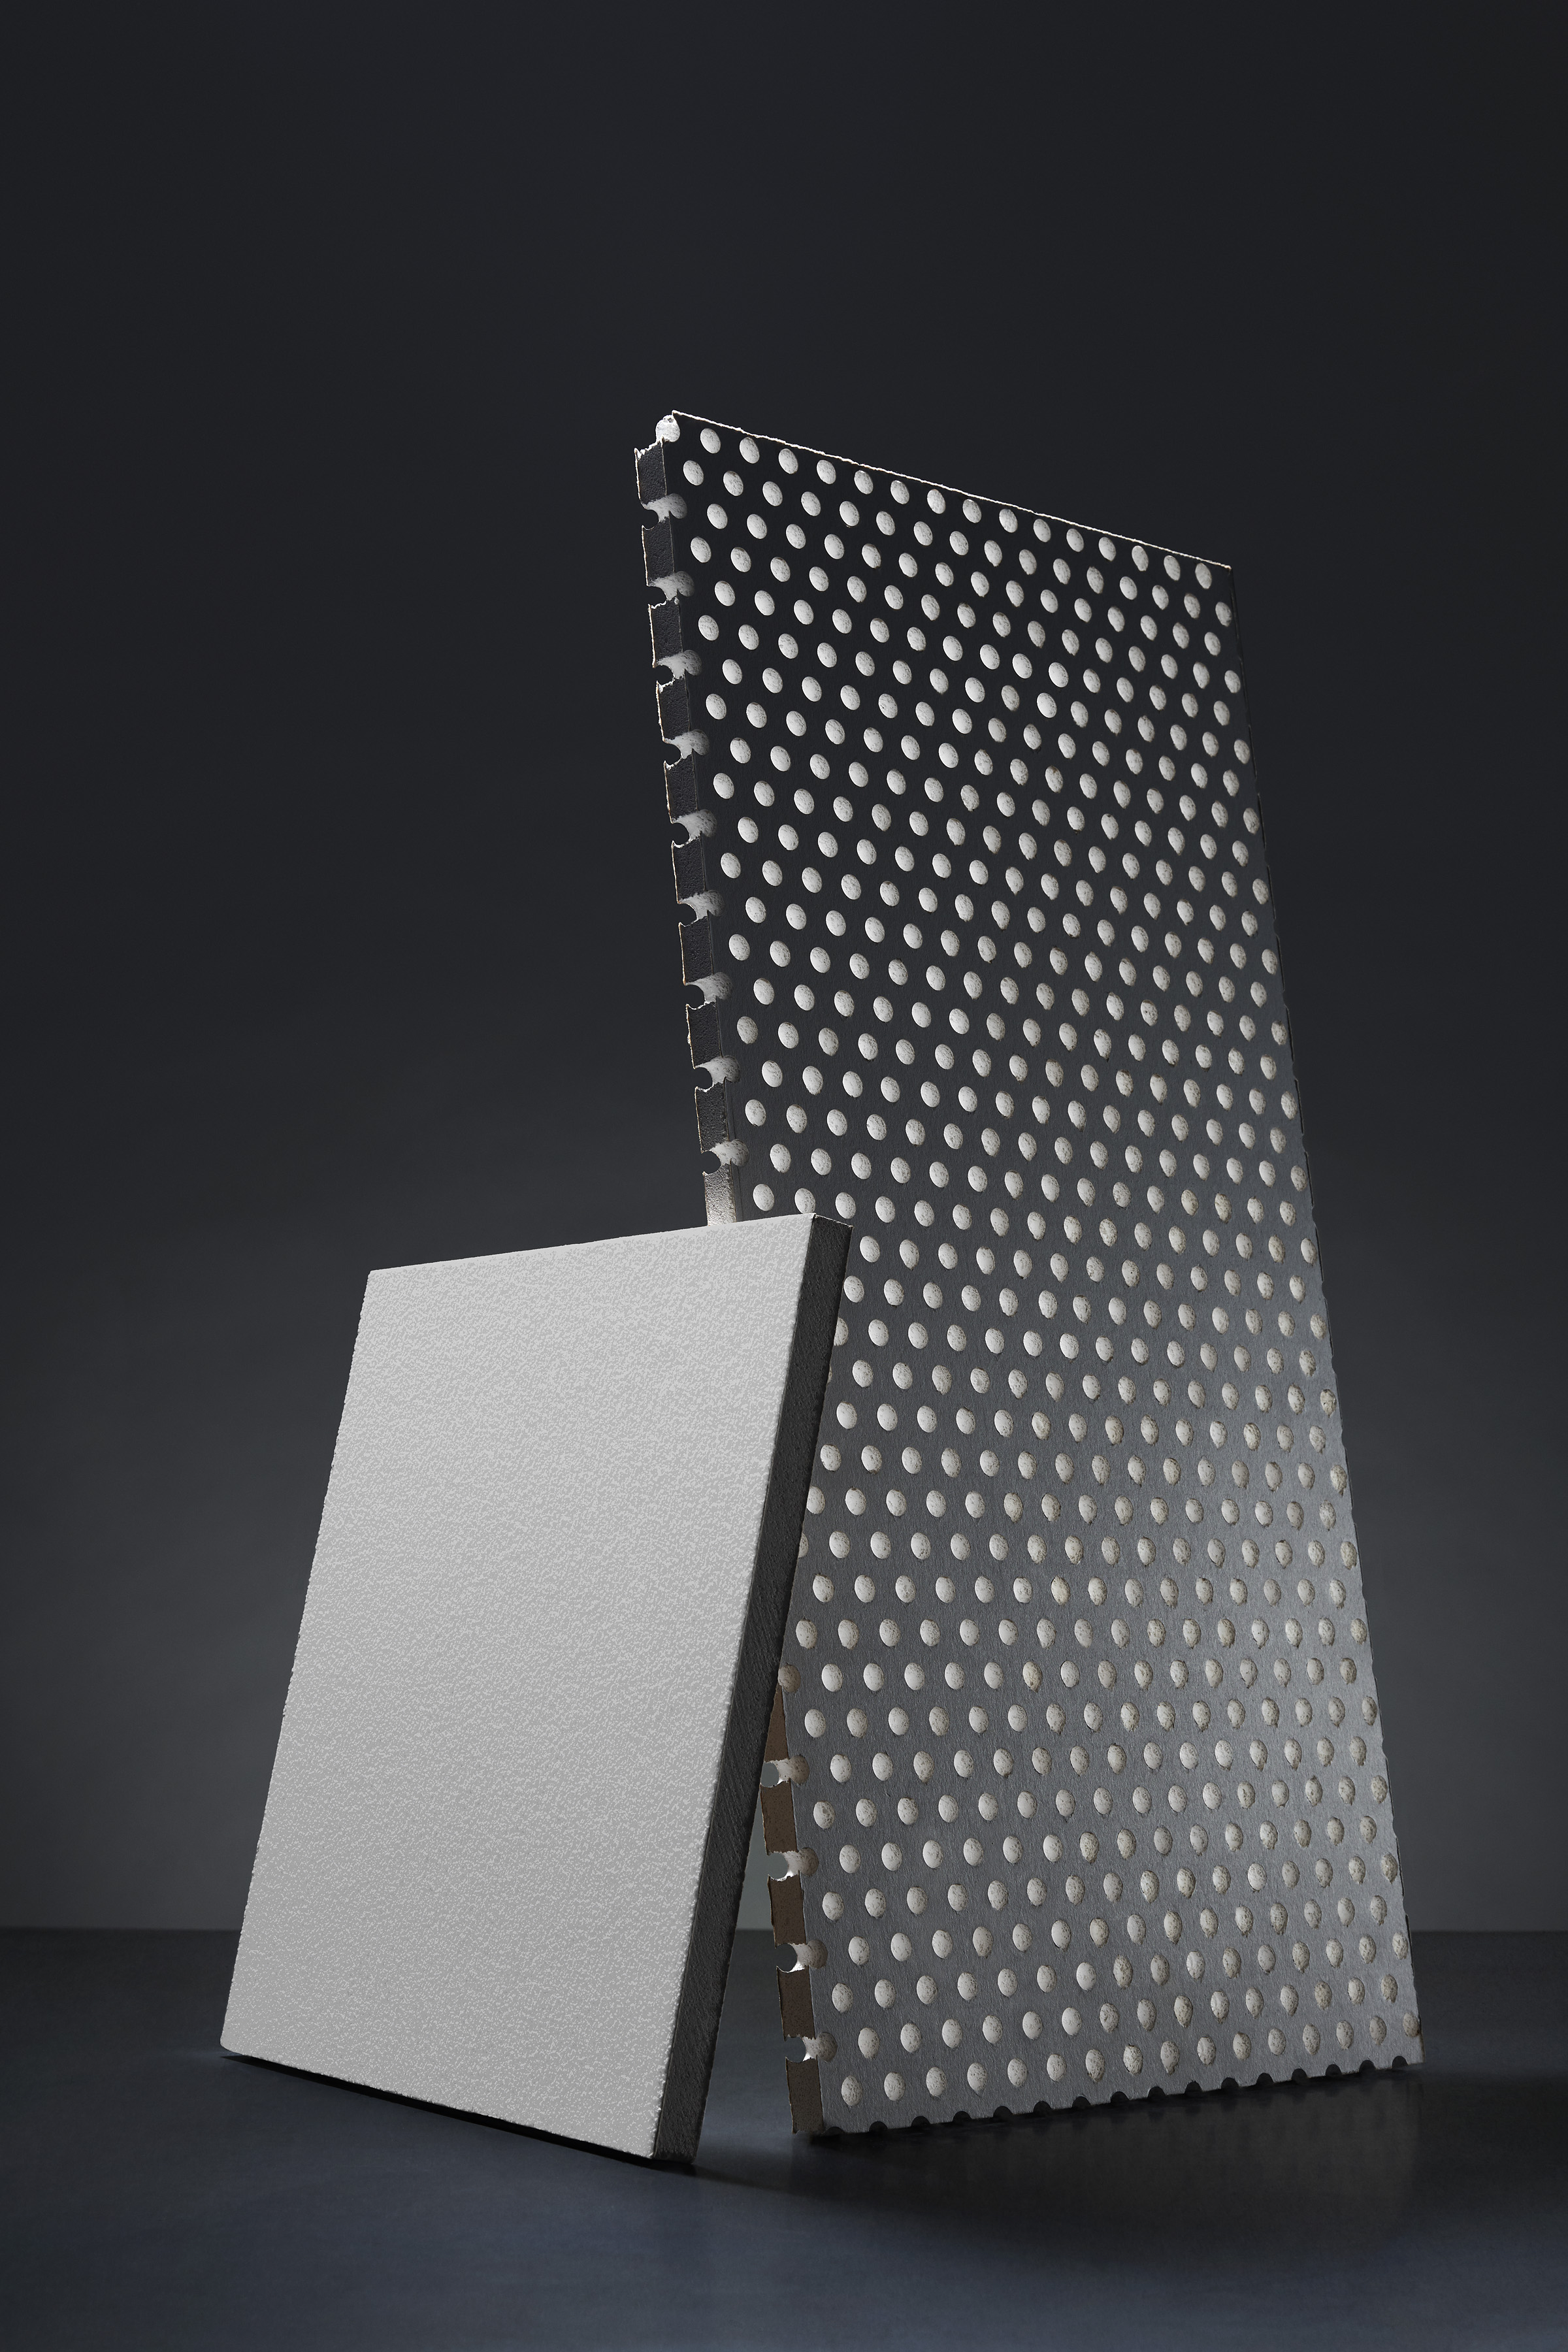 03_LEANING_TOWER_LAYERED_V3.jpg